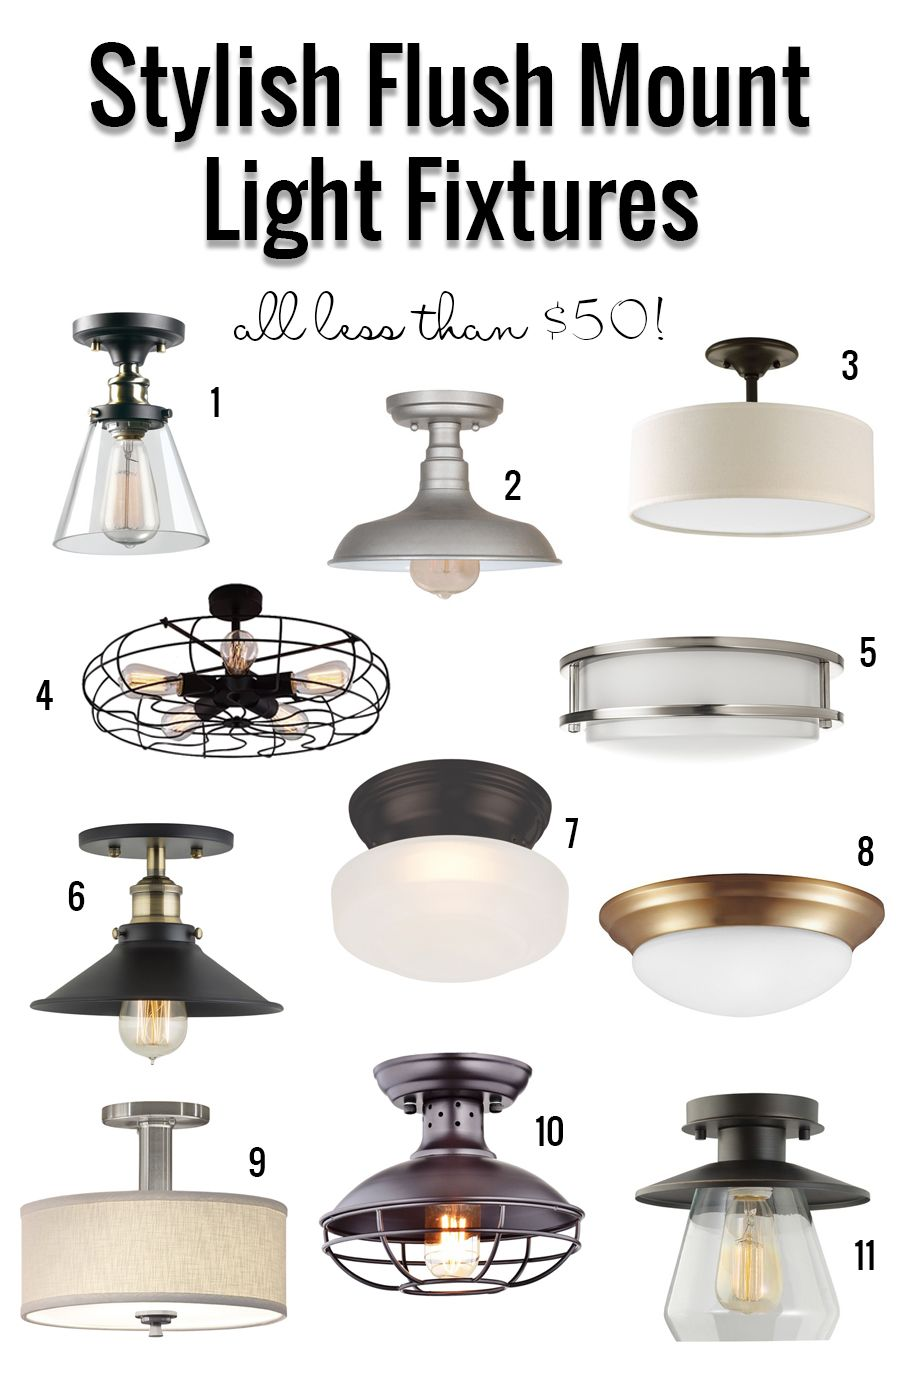 Stylish Flush Mount Light Fixtures Under 50